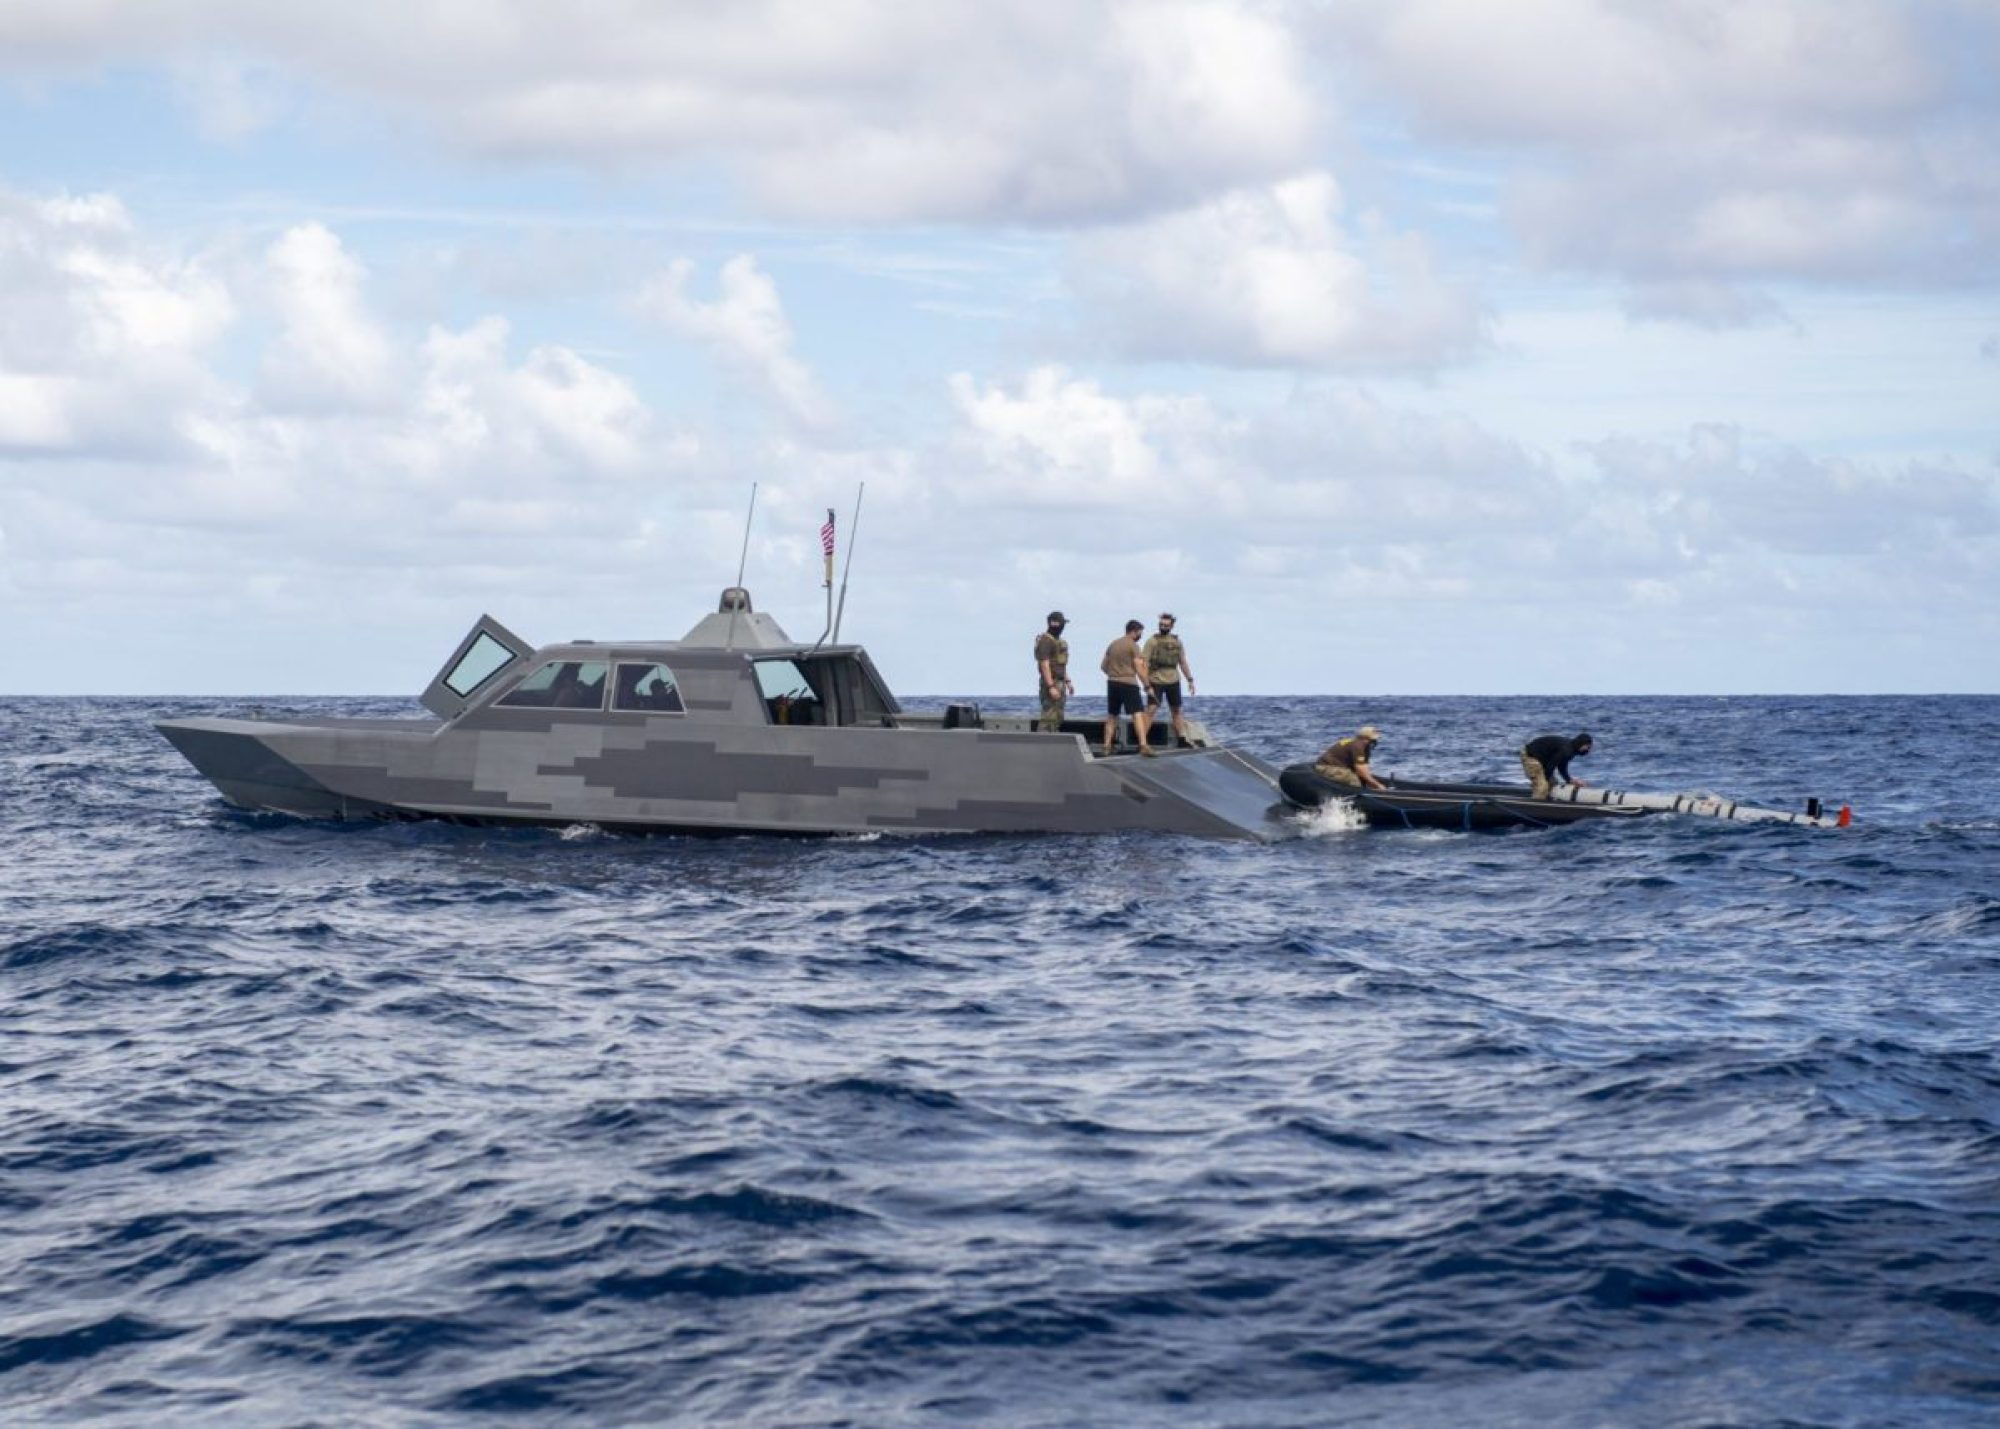 Sailors deployed with the expeditionary mine countermeasures (ExMCM) capability of Task Force 75 and Special Warfare Combatant Crewmen assigned to Special Boat Team 12 recover a MK 18 Mod 2 unmanned underwater vehicle (UUV) onto a Combatant Craft Medium (CCM) in Pago Bay, Guam. (U.S. NAVY PHOTO BY MASS COMMUNICATIONS SPECIALIST 1ST CLASS ADAM BROCK)